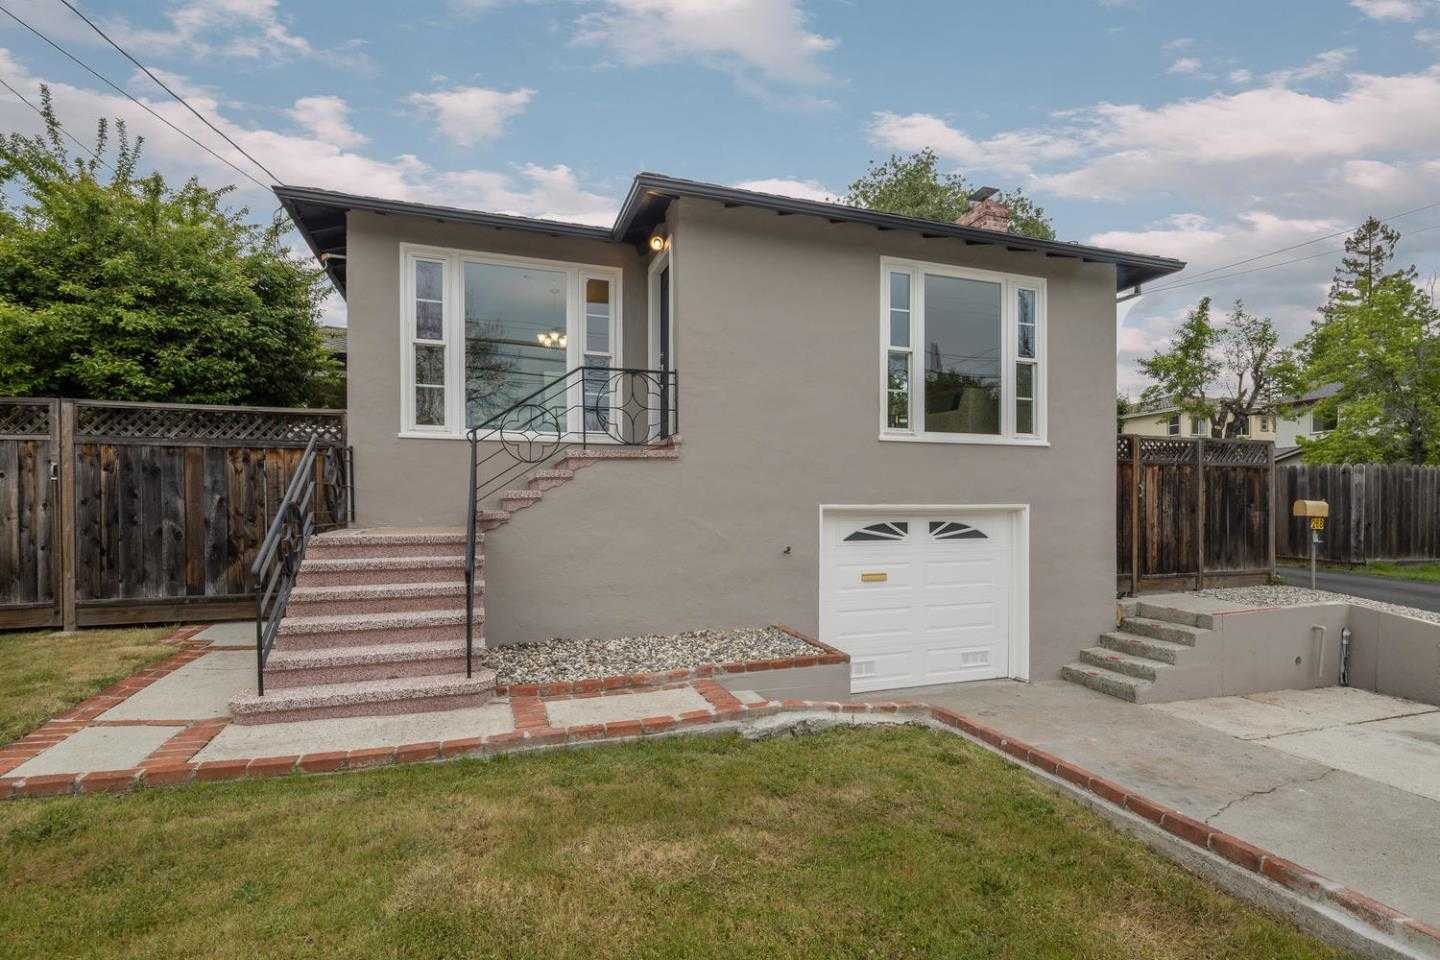 $1,649,000 - 3Br/3Ba -  for Sale in Redwood City